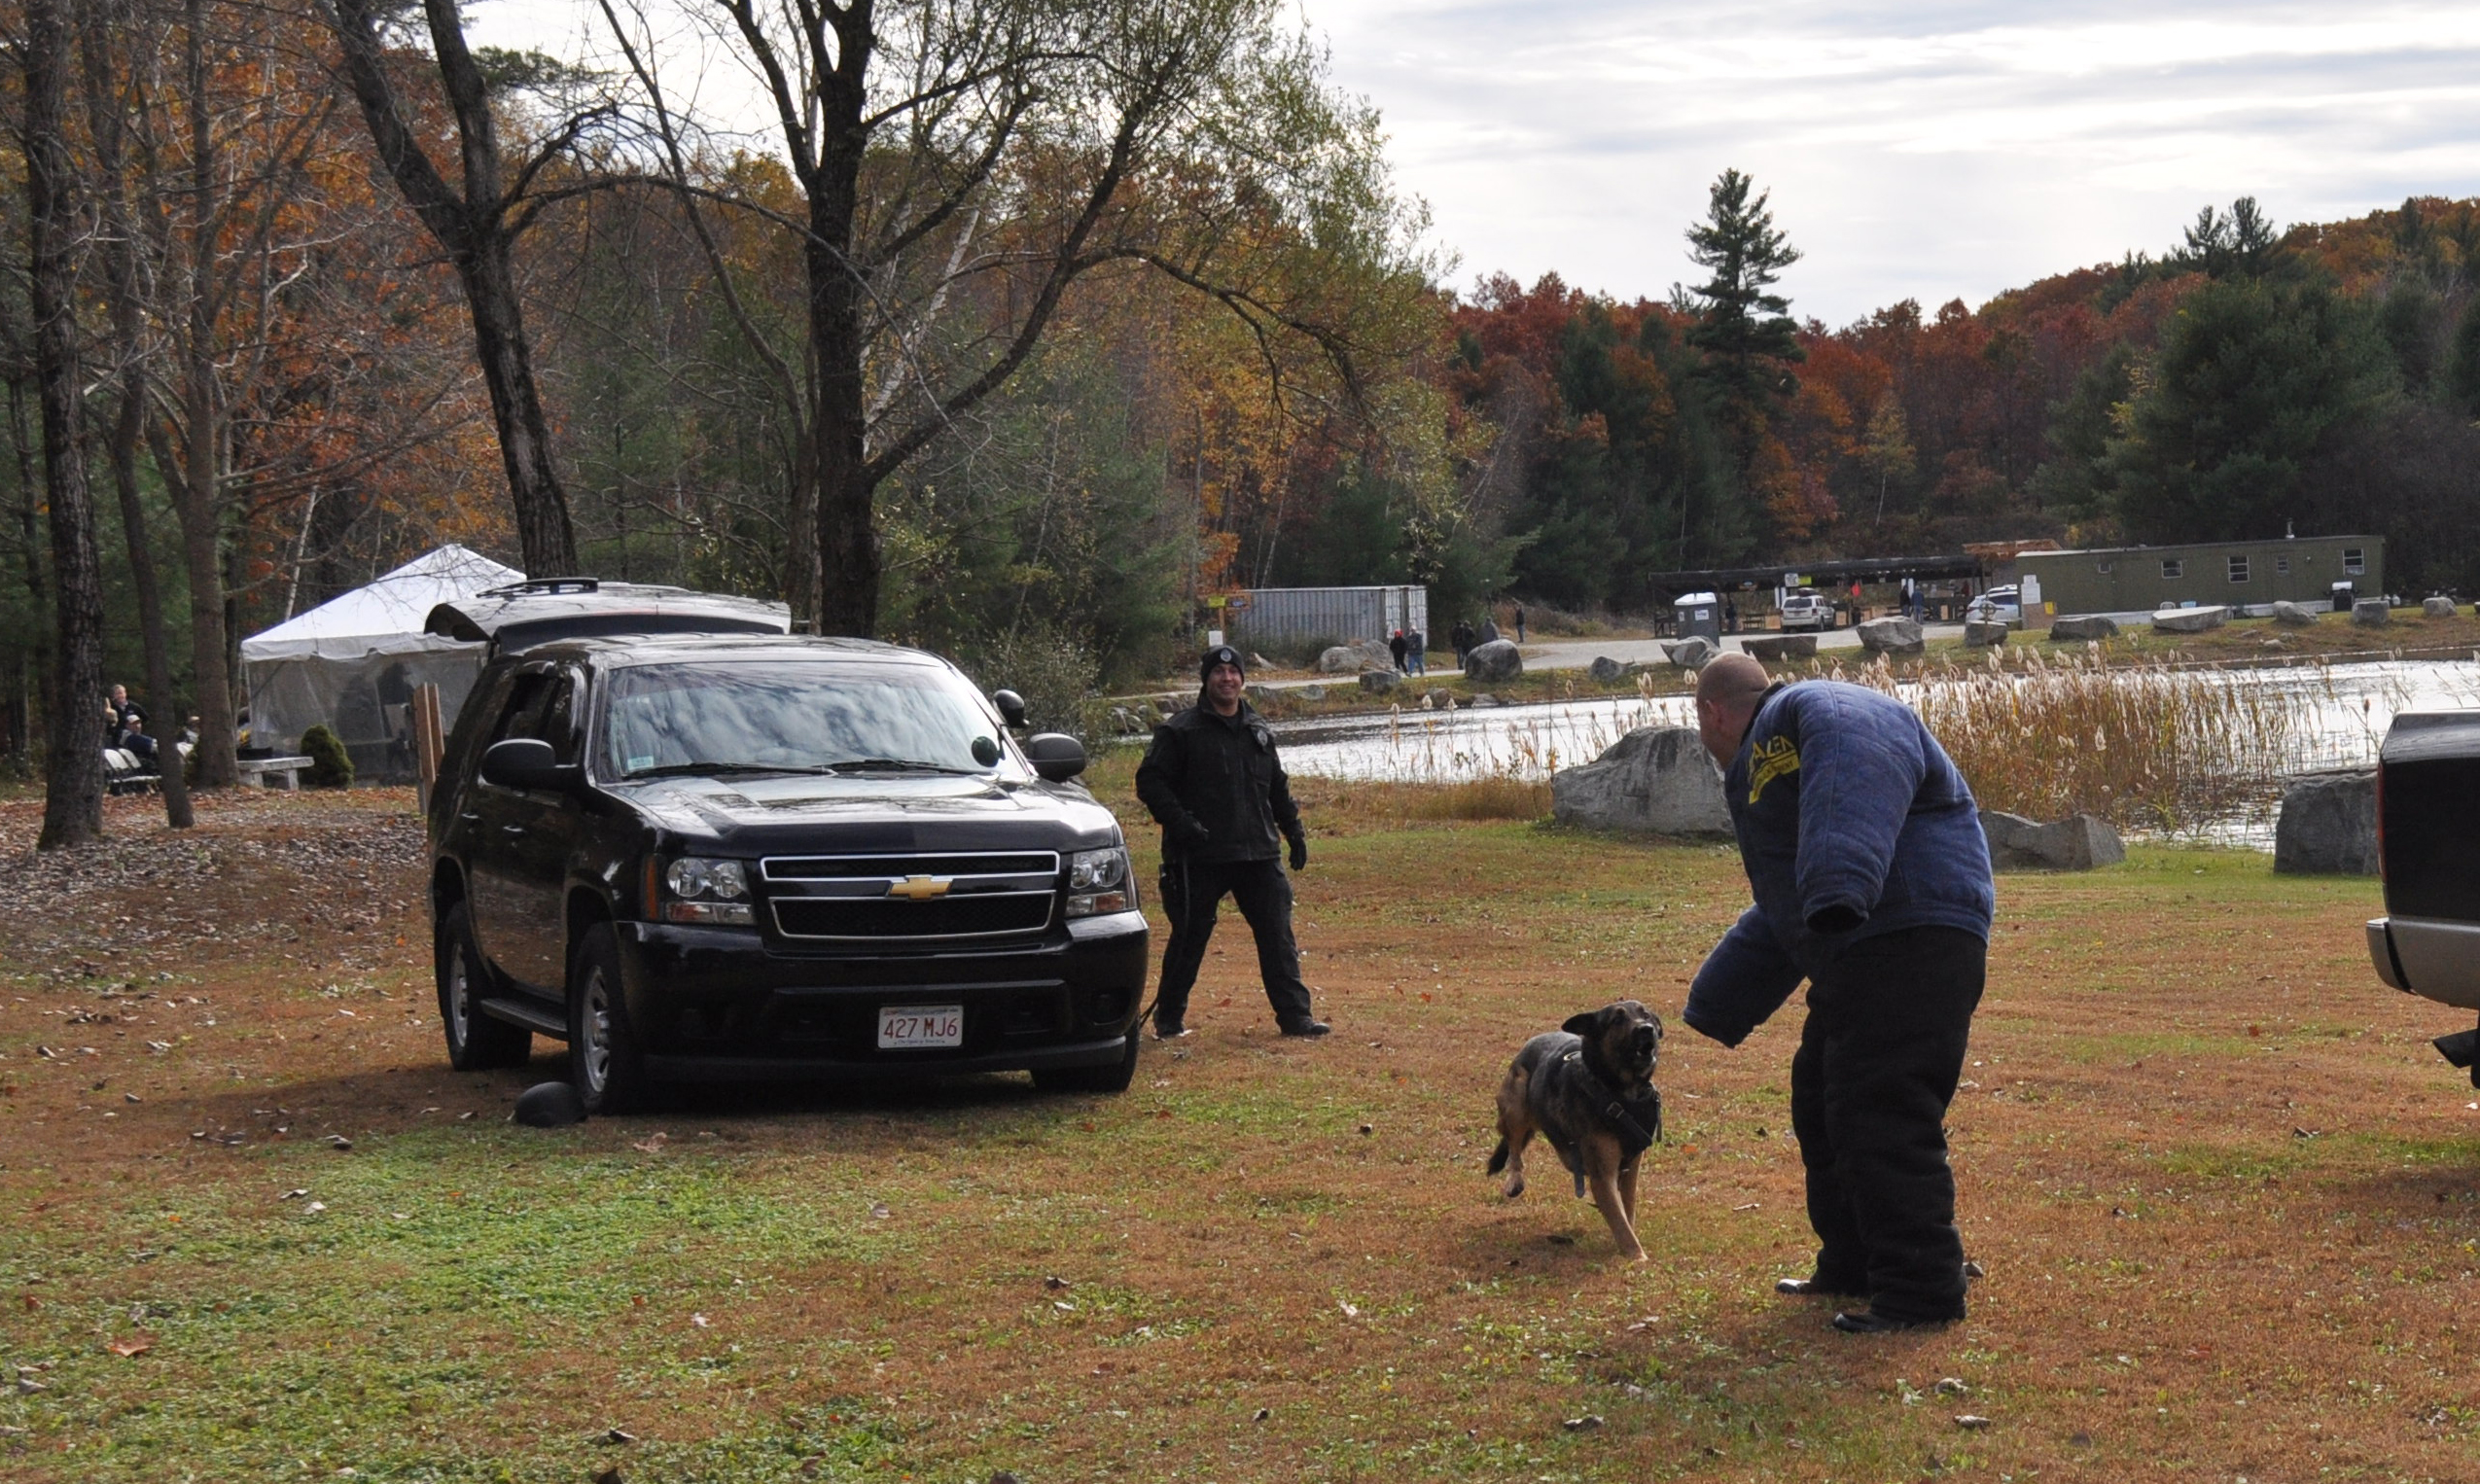 K9 and 2 officers